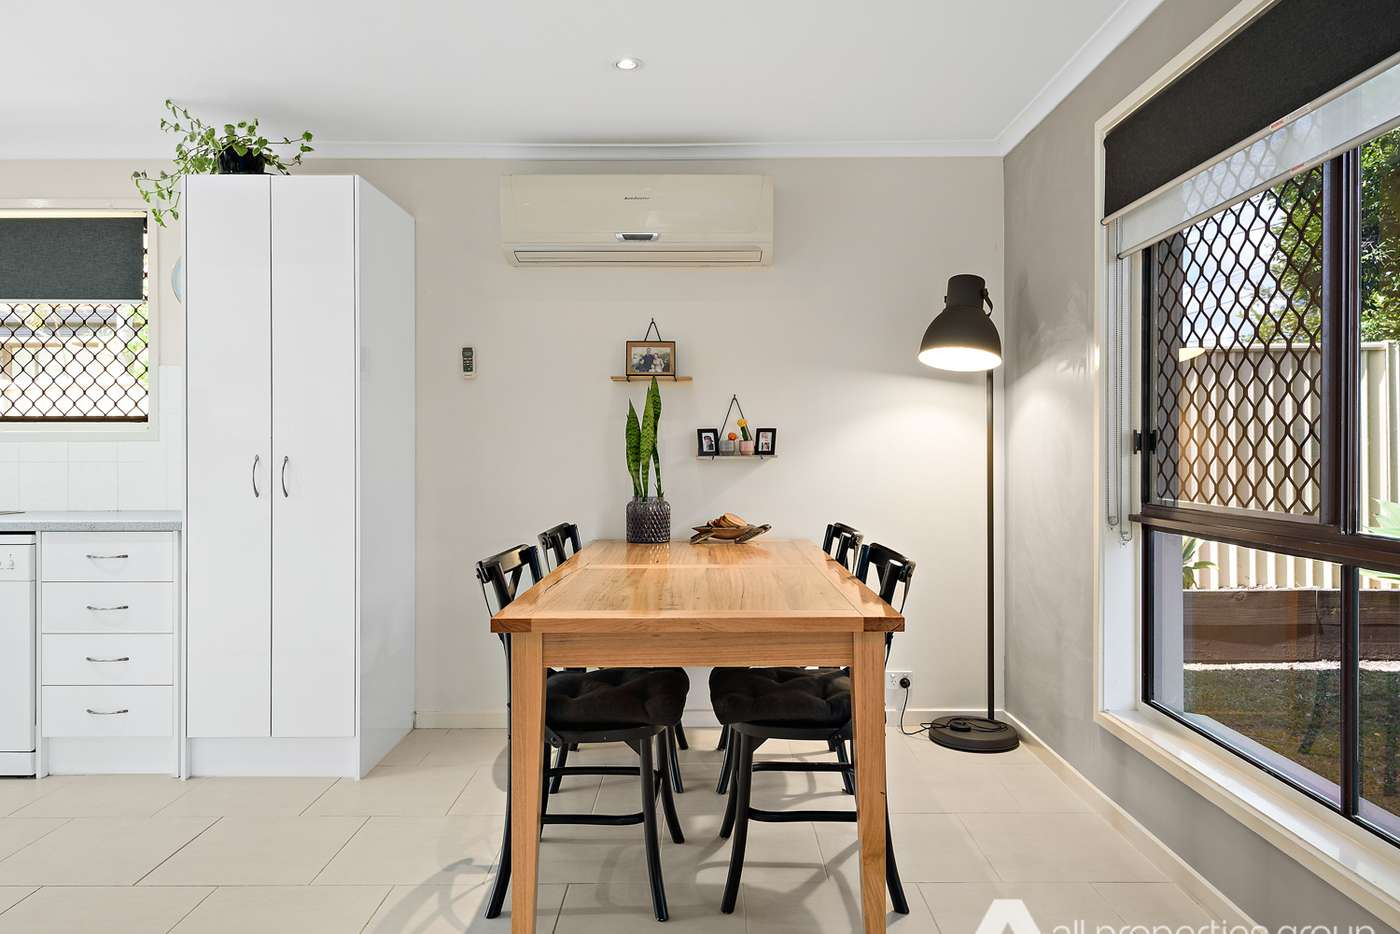 Sixth view of Homely house listing, 5 Mathews Street, Bethania QLD 4205